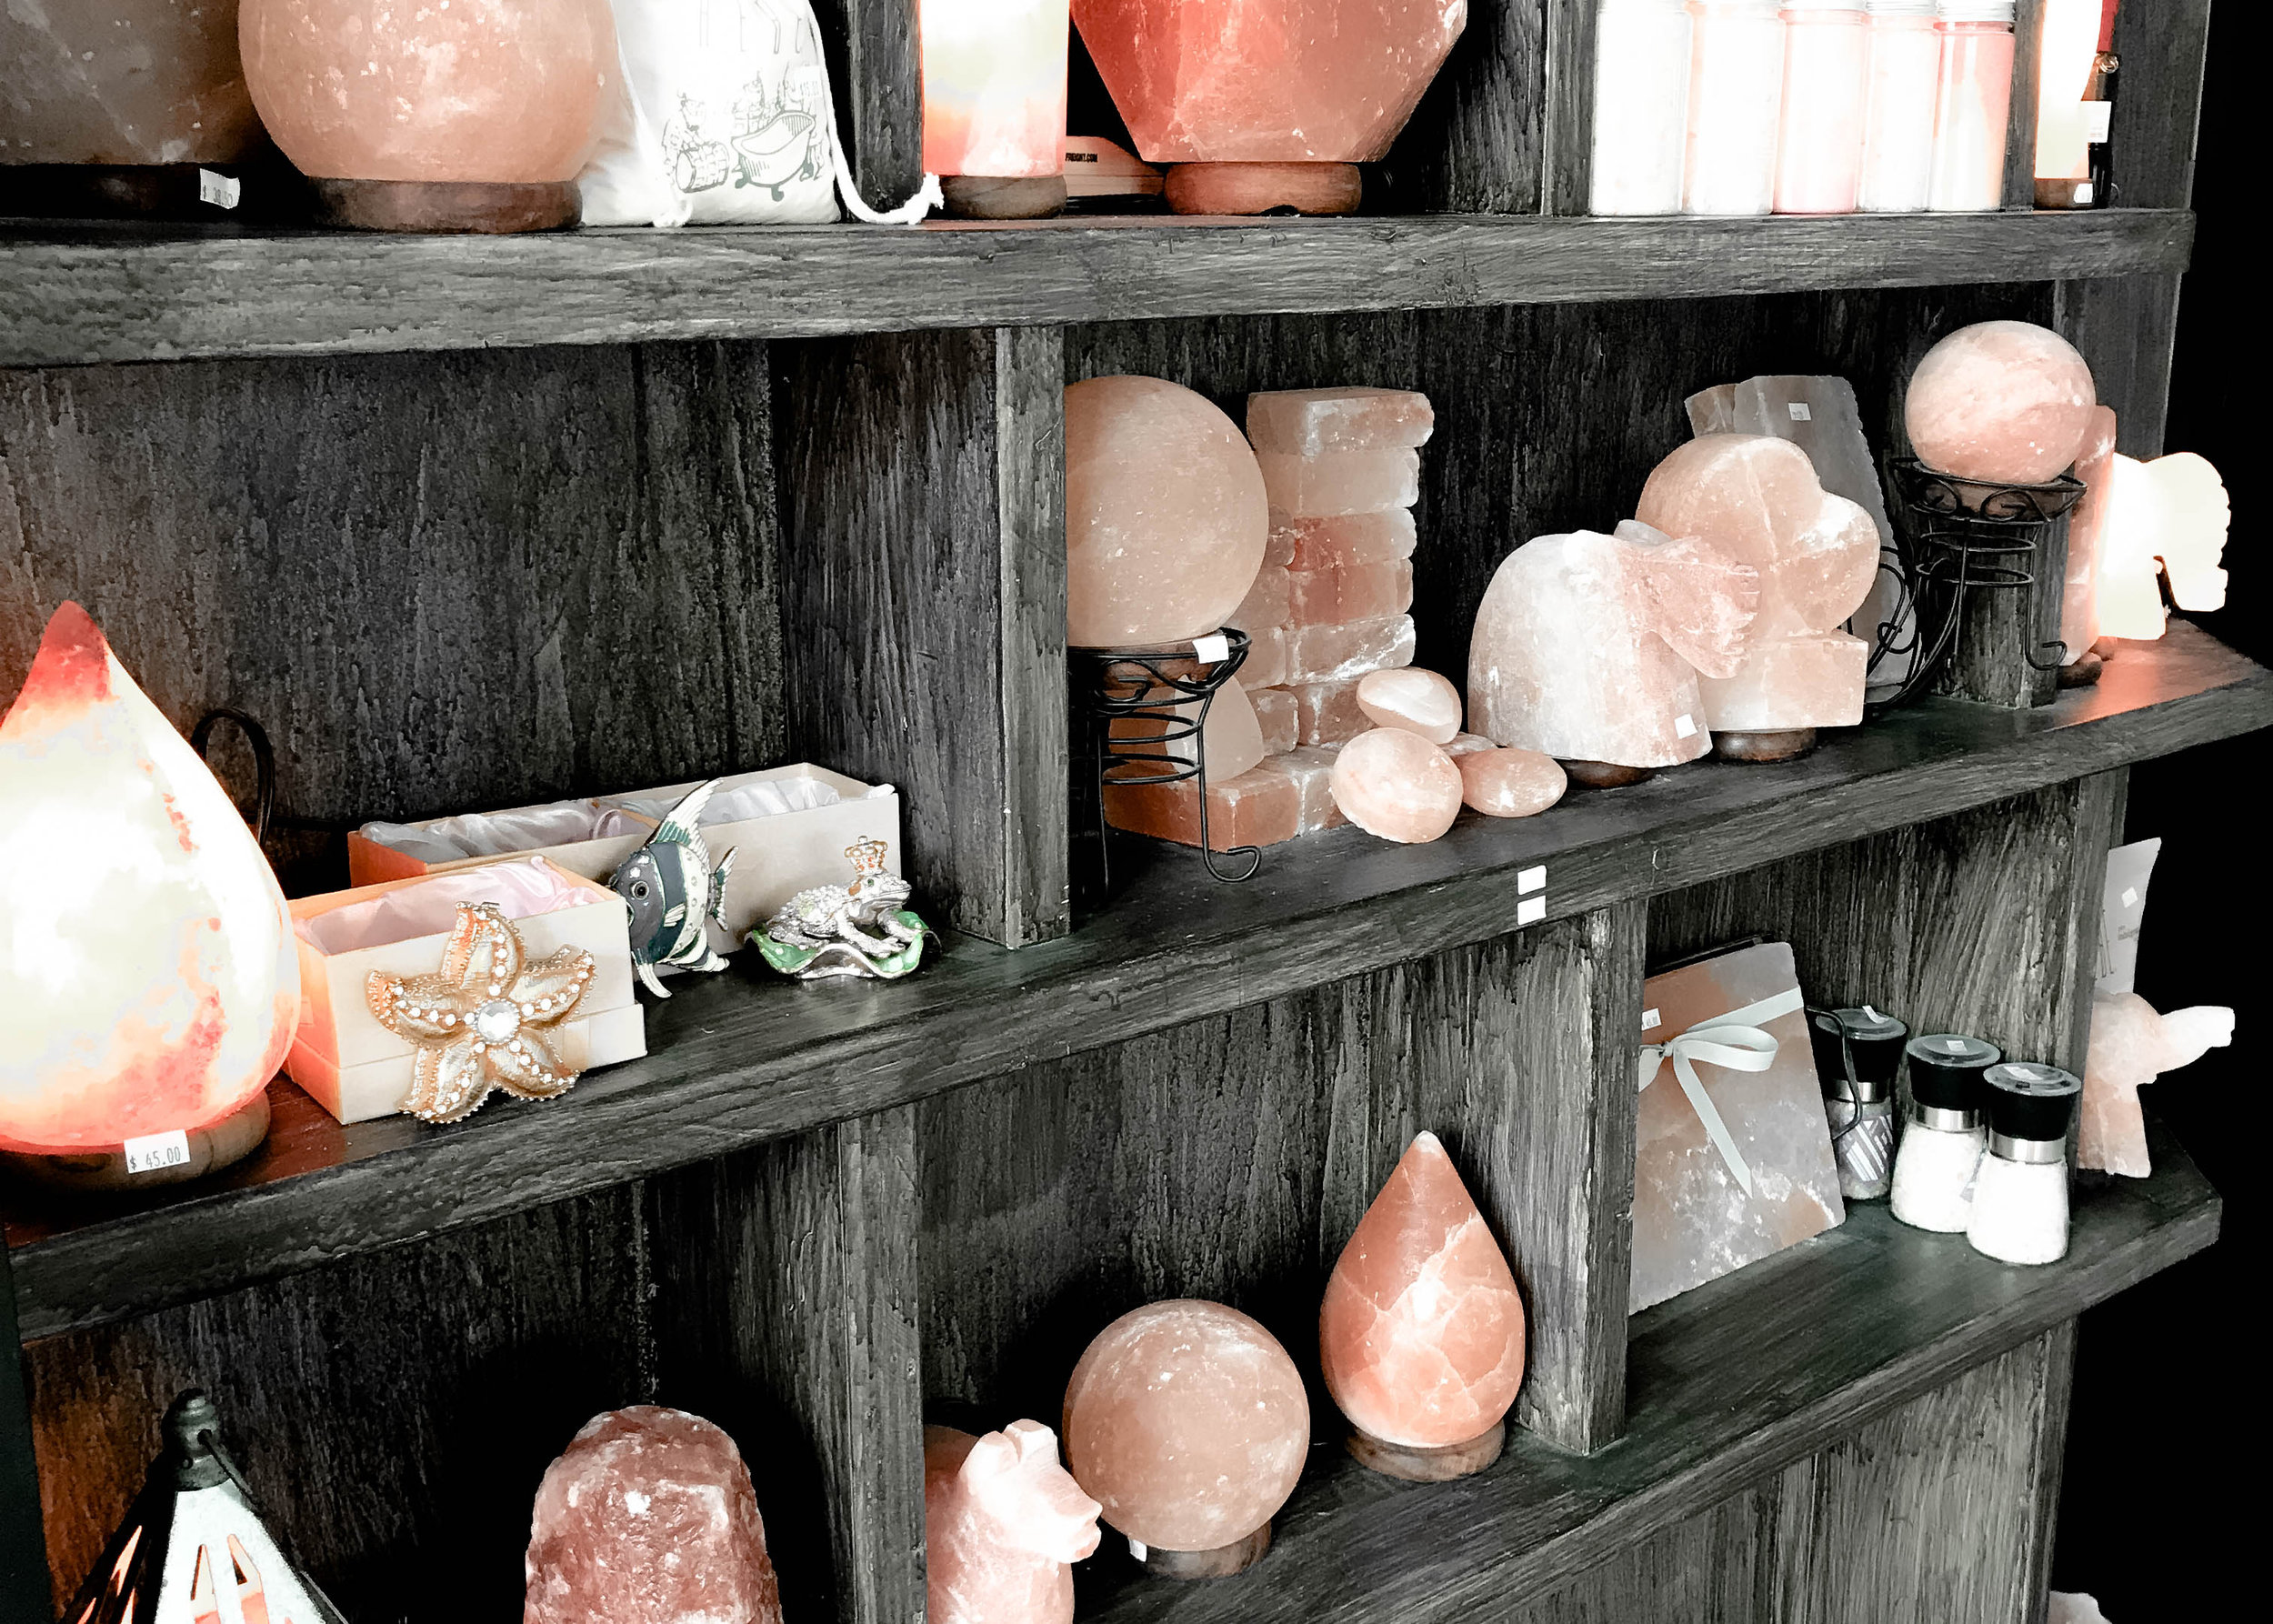 my-experience-in-a-salt-cave-natures-salt-cave-cranford-nj-shopping1.jpg